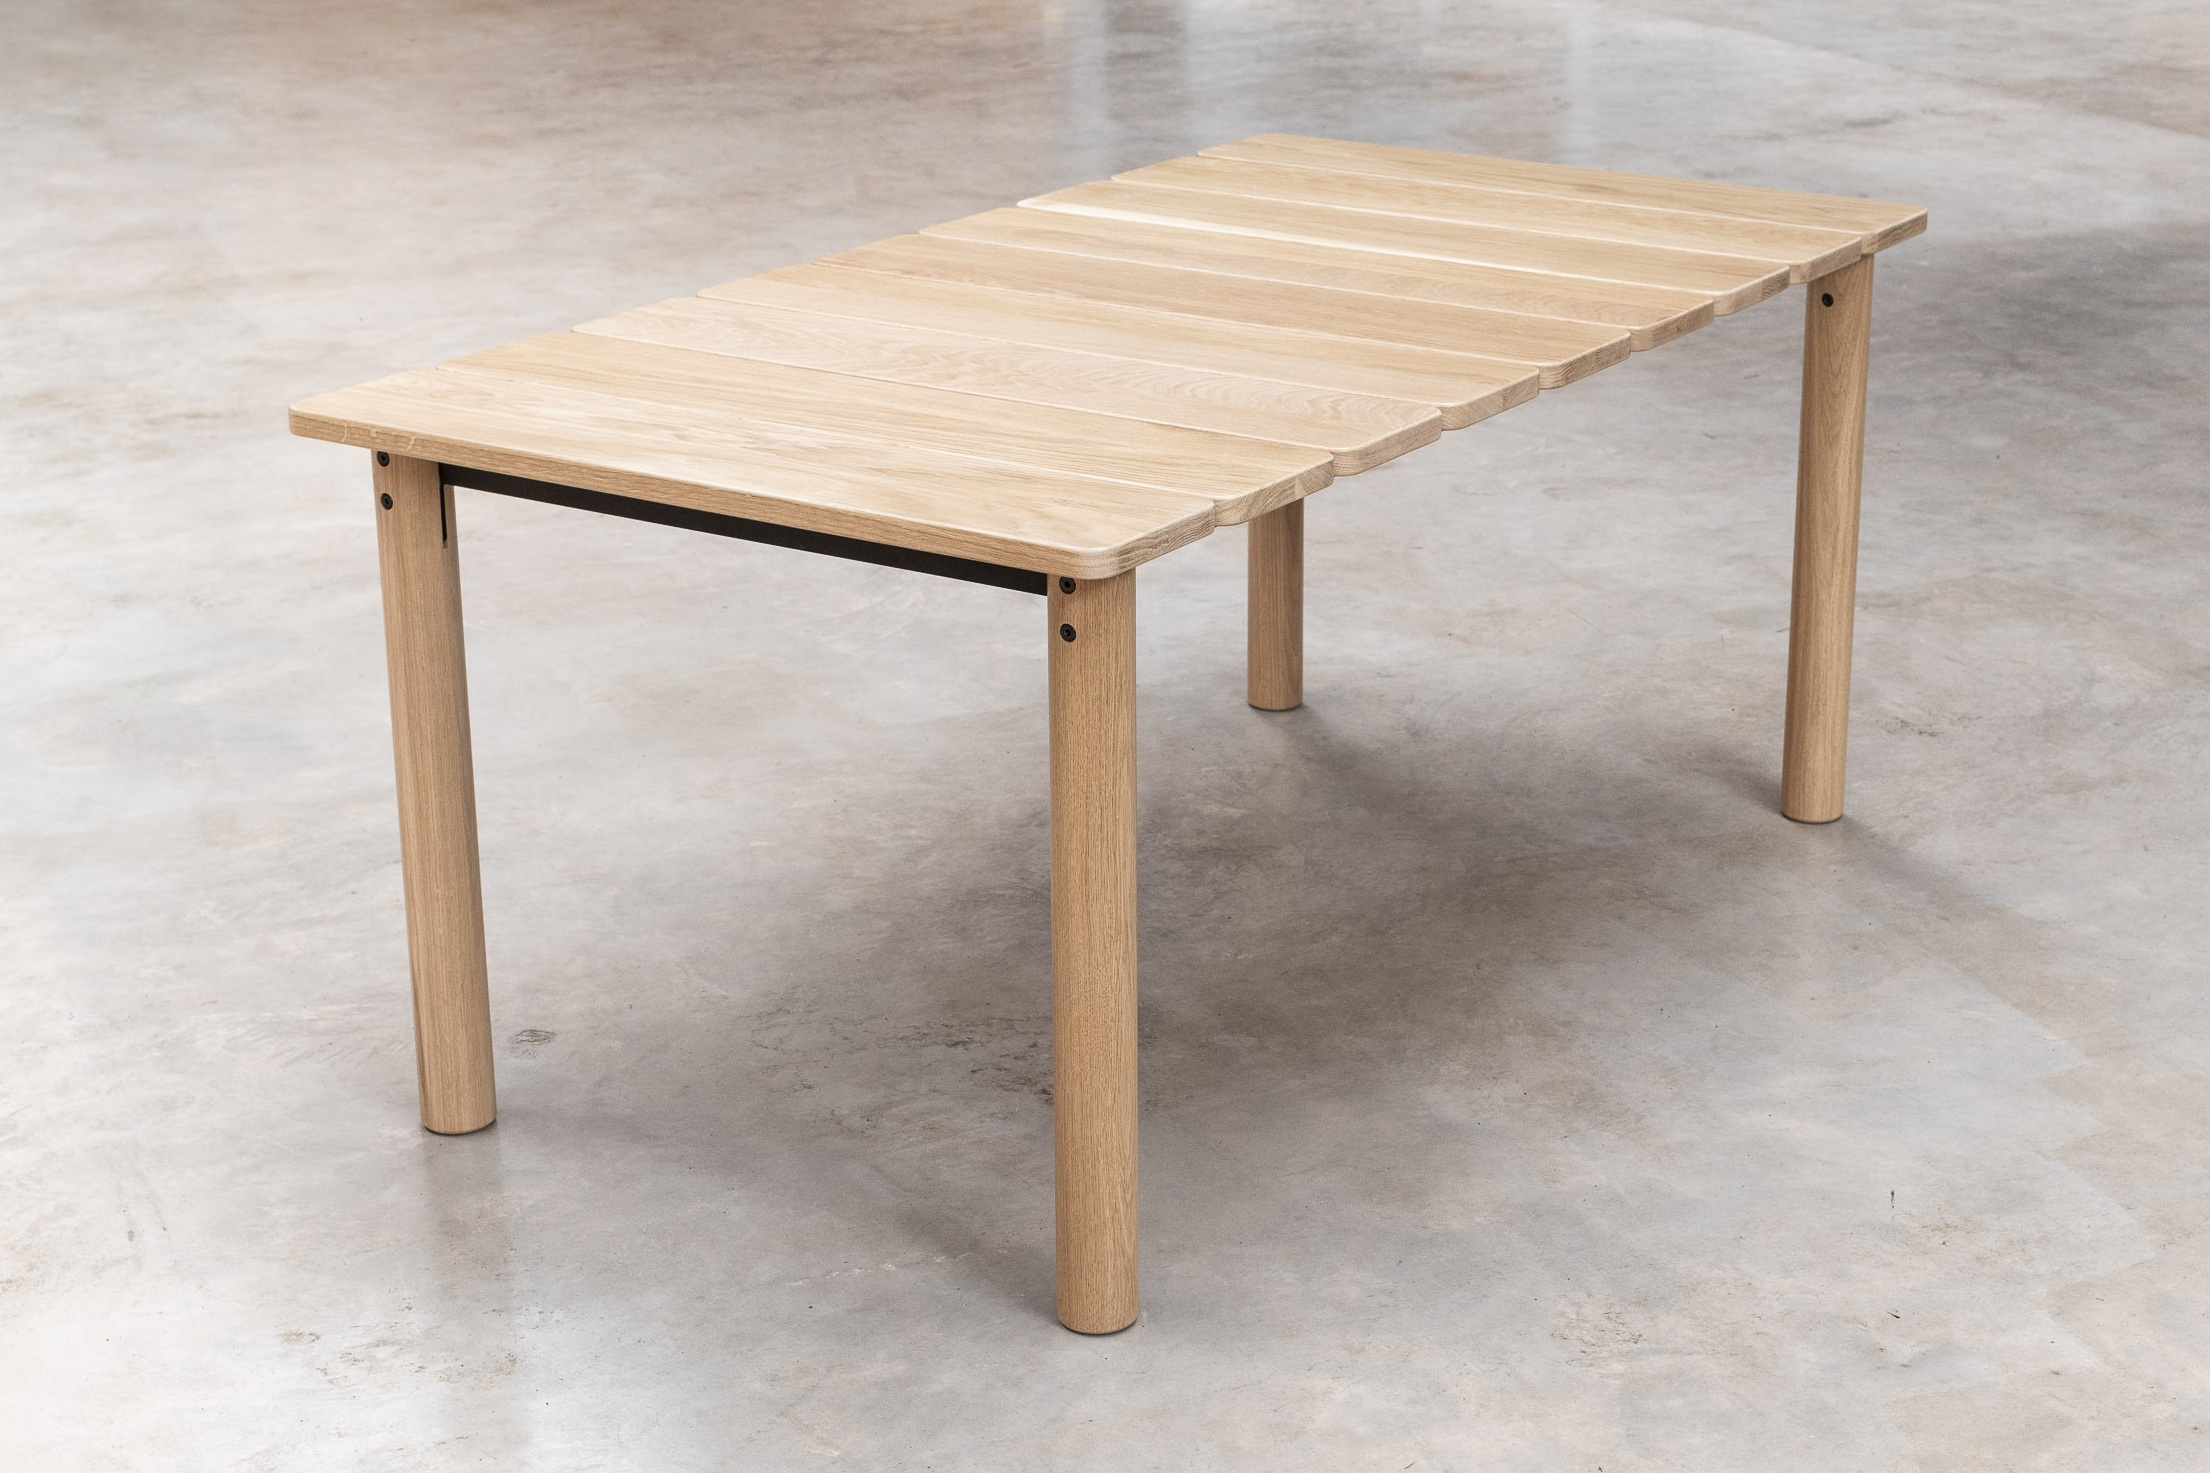 Domestic Style - Inspired by the humble farmhouse table, solid oak provides warmth and familiarity, echoing the same sentiments found within the home. Whilst materials used in the construction ensure the table's ability to handle everyday wear and tear.